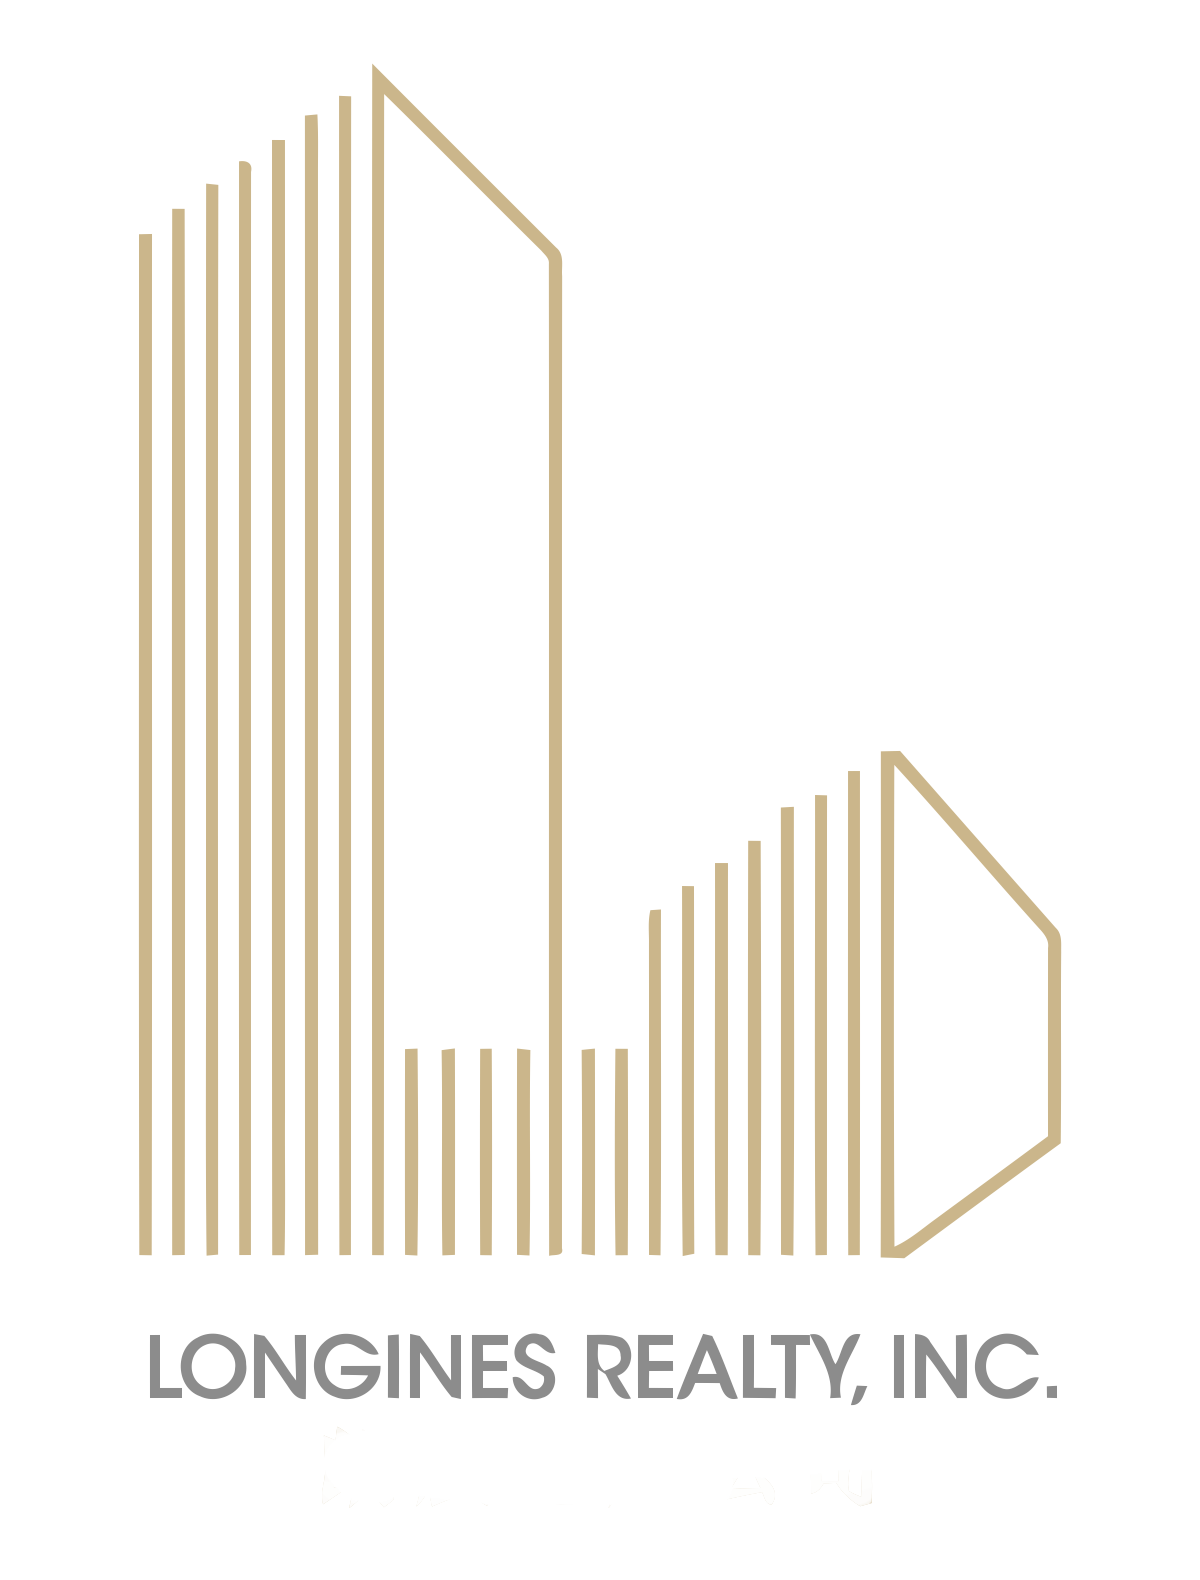 LONGINES REALTY, INC.